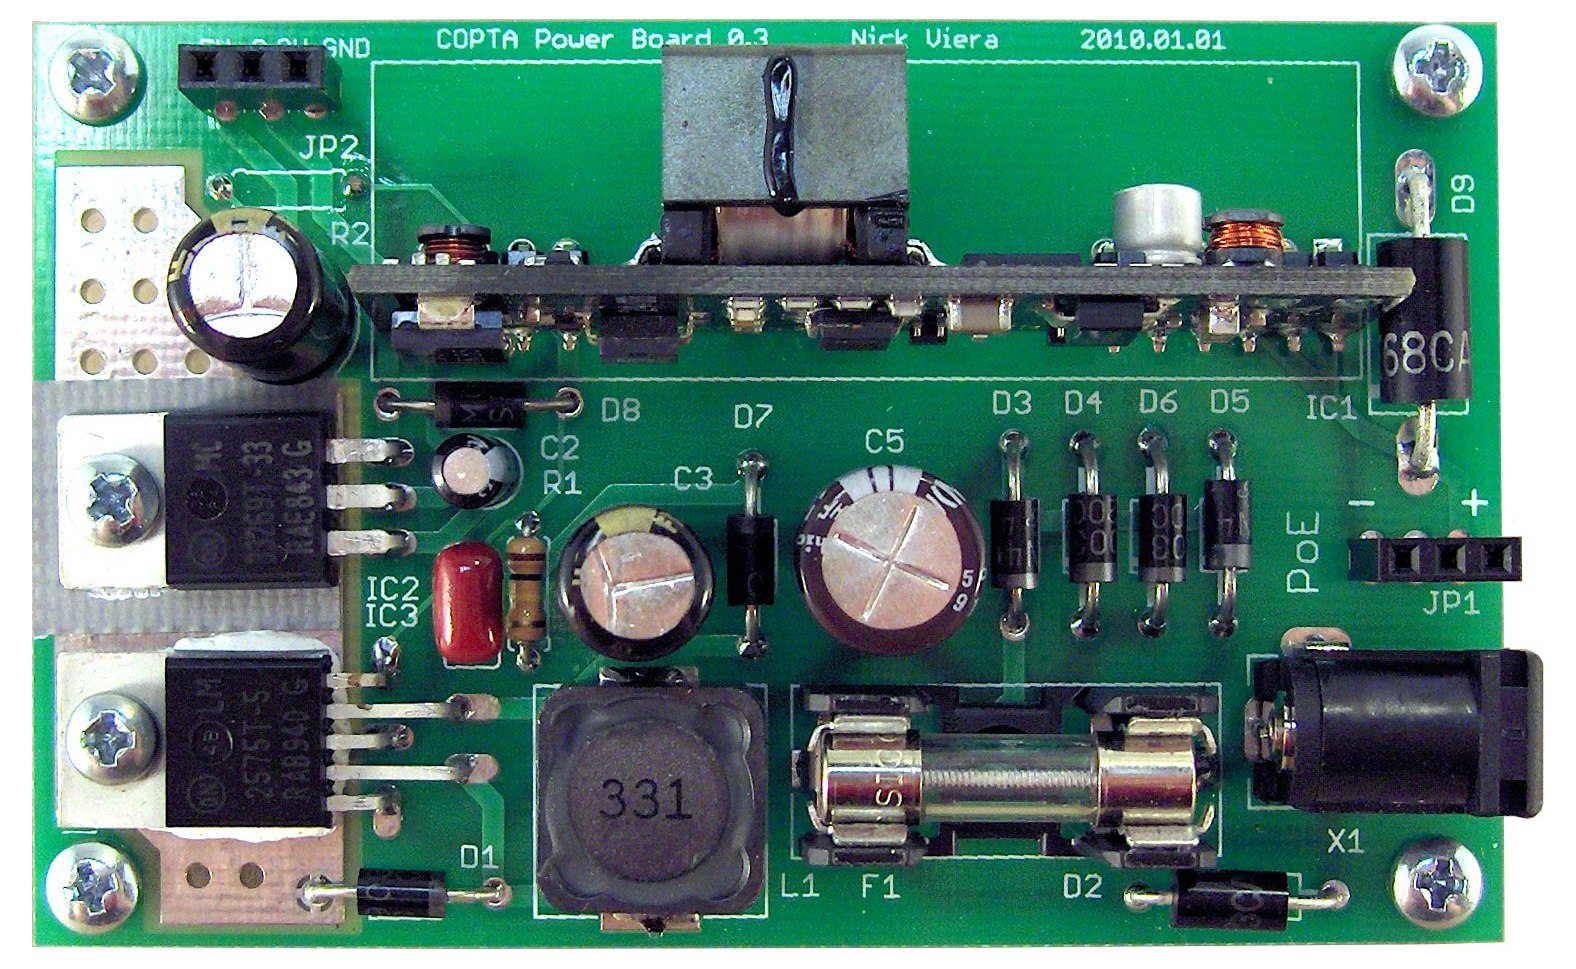 Power Supply Circuit Board Components Not Lossing Wiring Diagram 25 To 25v Regulated Electronic That Rh Nickviera Com Printed Testing